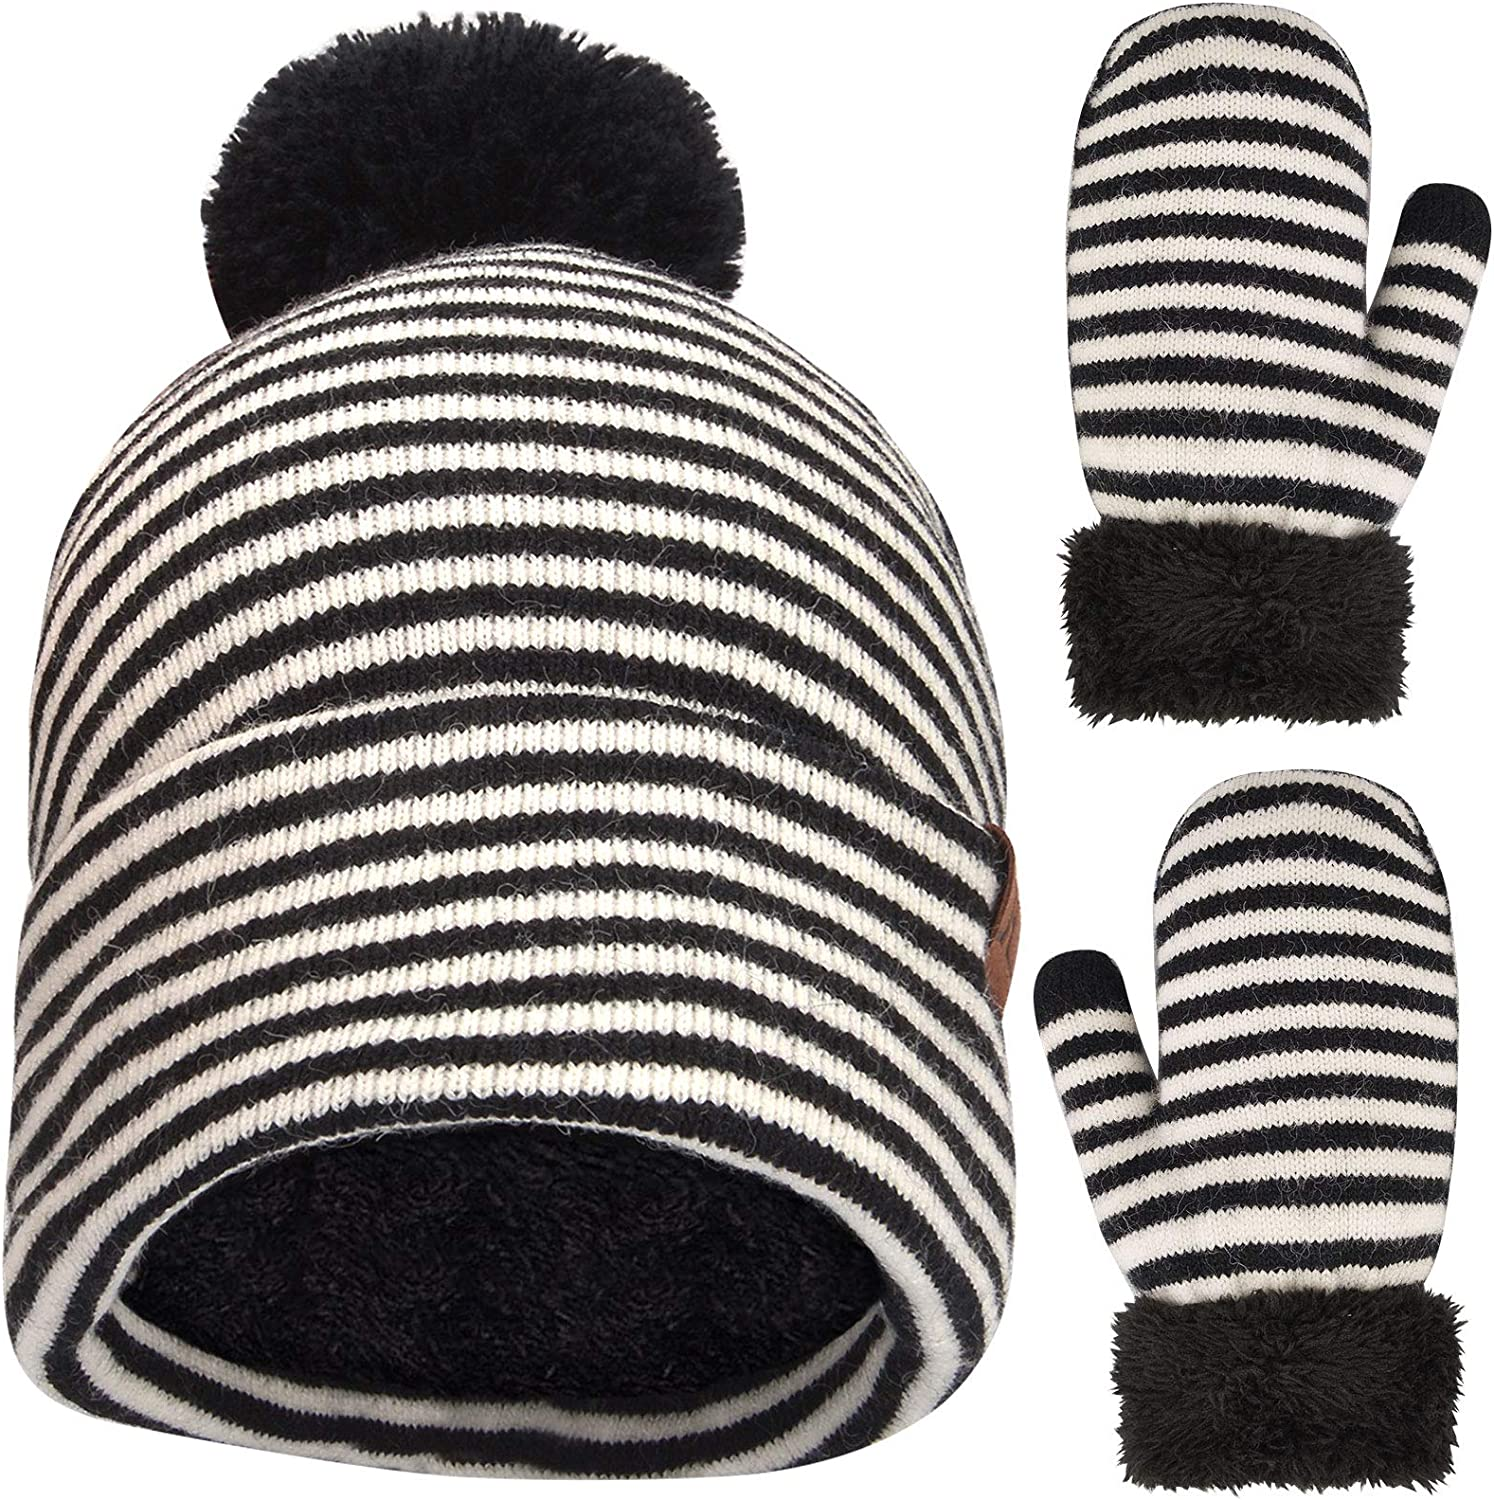 Winter Toddler Pom Beanie Hat and Mittens Gloves Set Warm Knit Fleece Lined for Boy Girl Kids Age 2-5